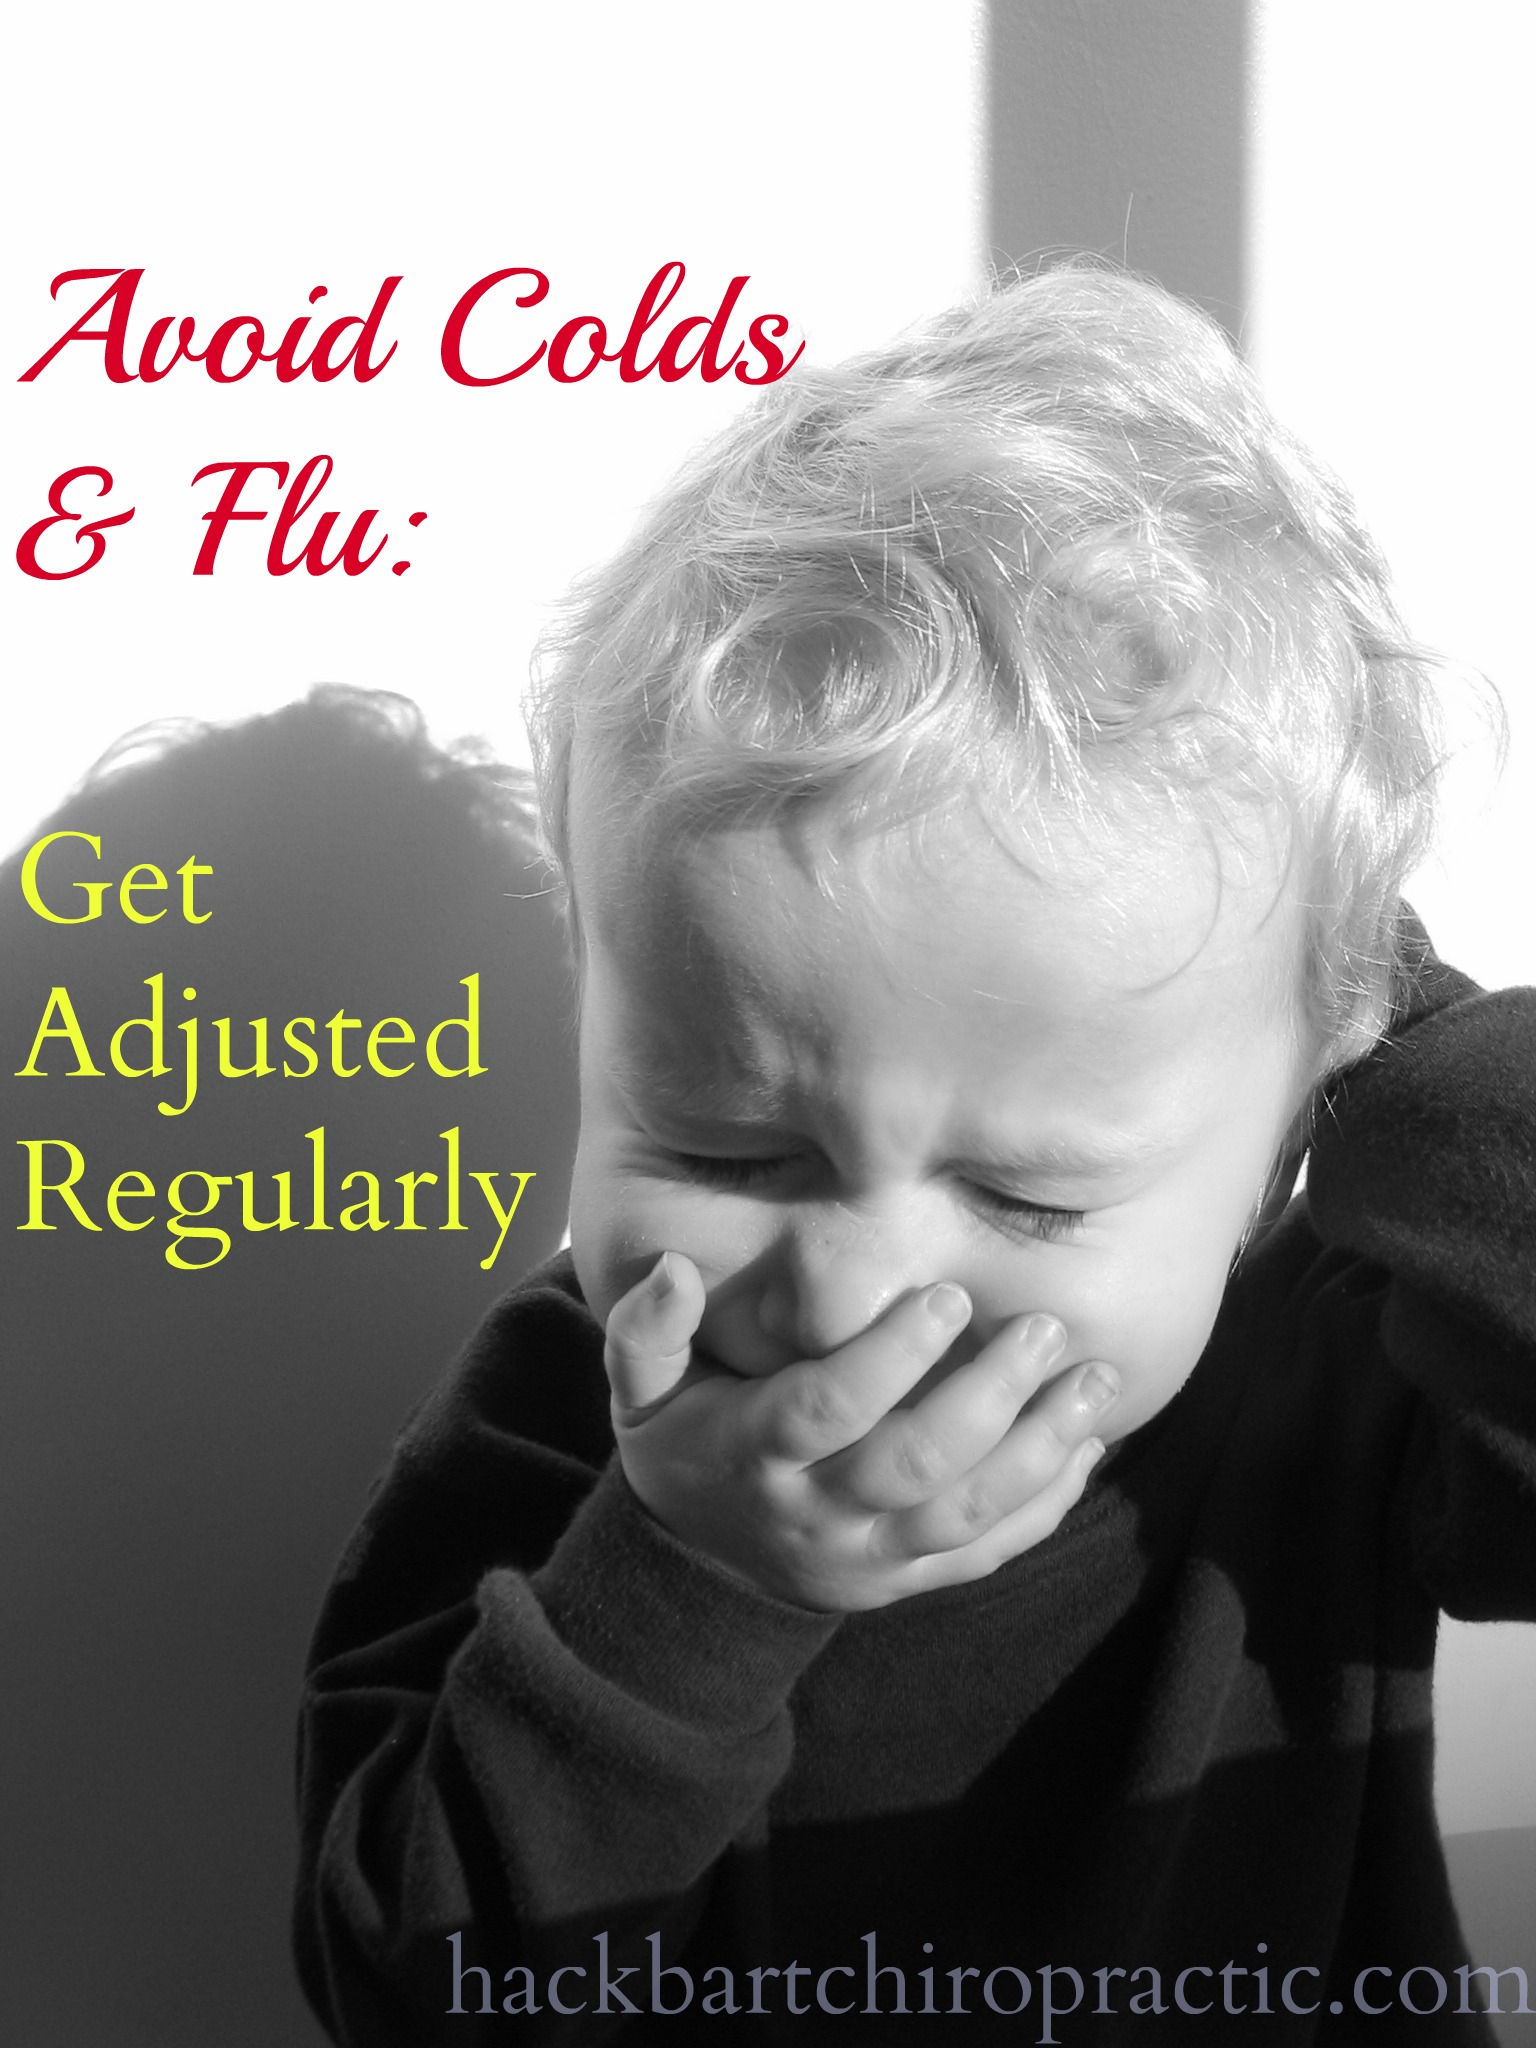 avoid colds and flu